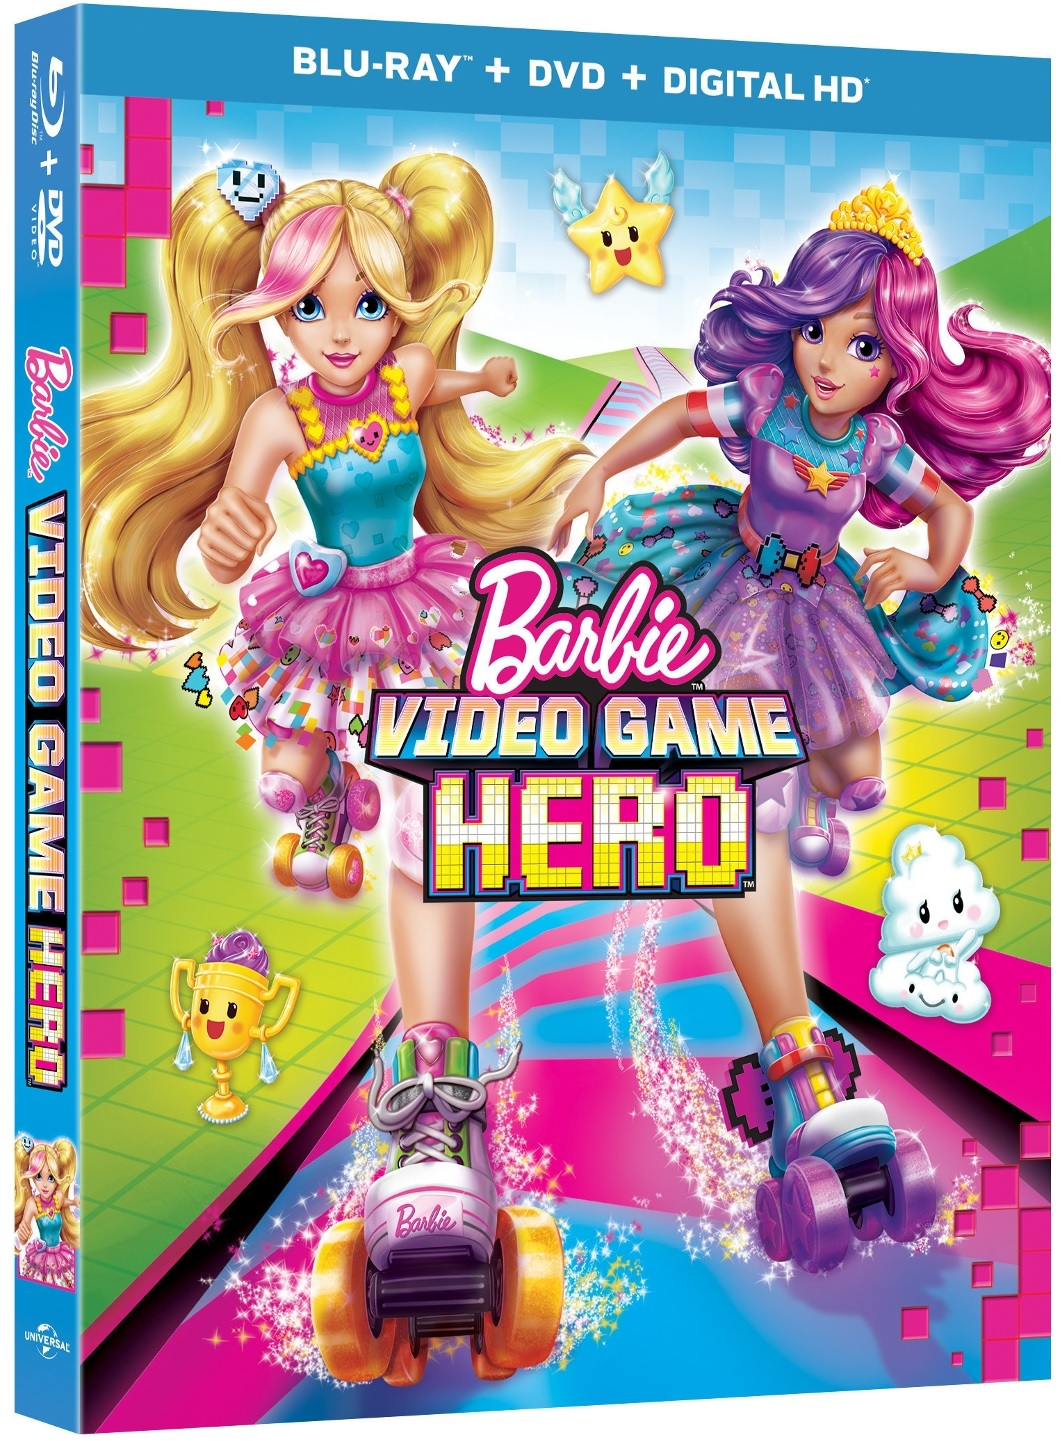 Barbie Video Game Hero Blu-ray Review